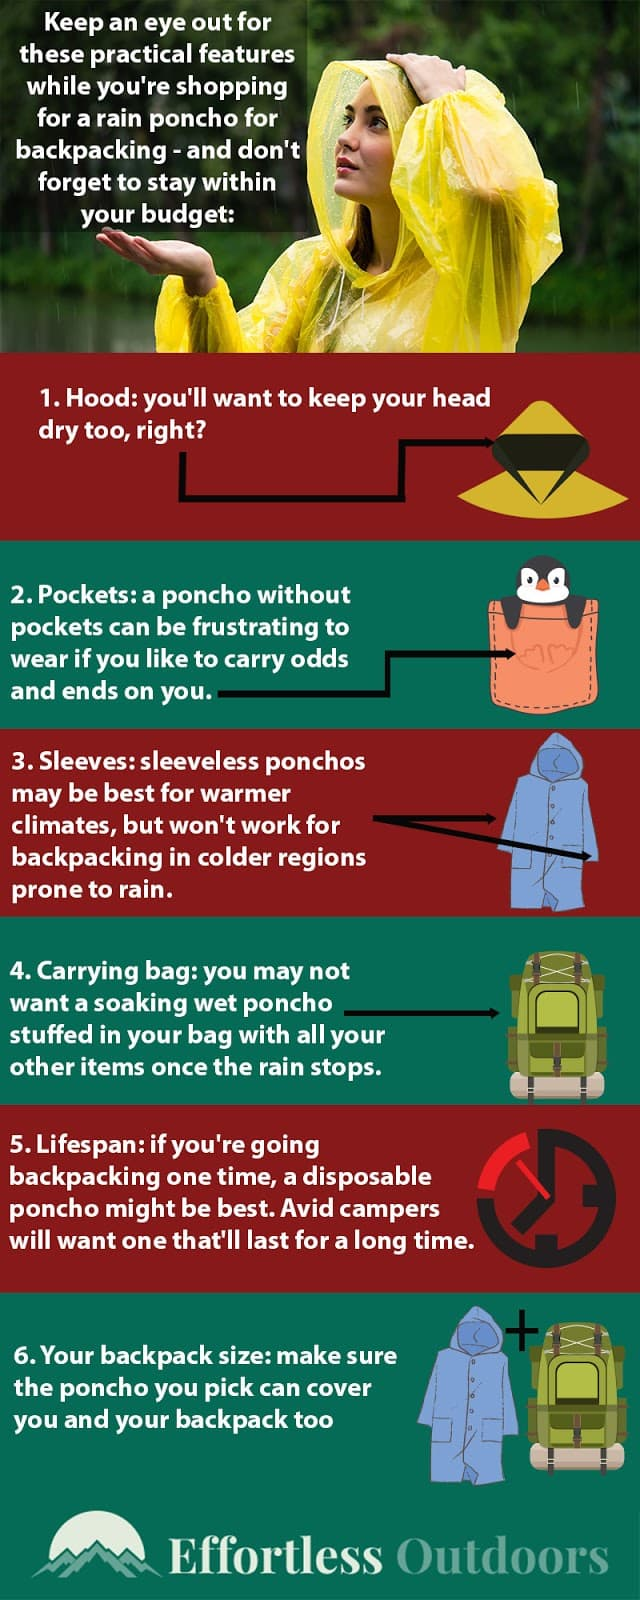 best rain poncho for backpacking infographic